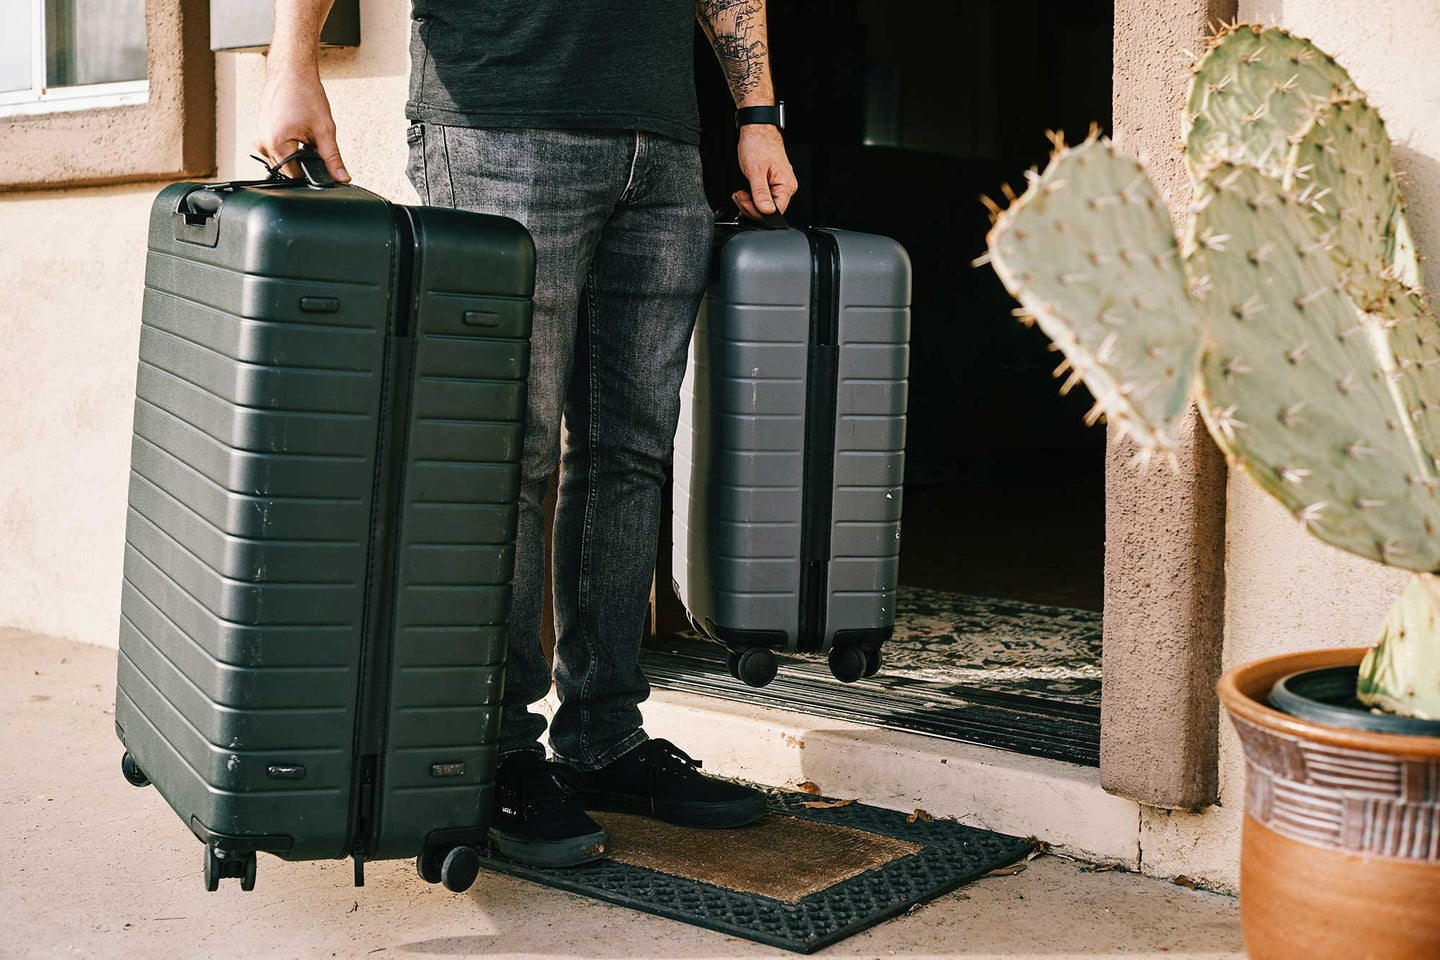 Guy holding suitcases